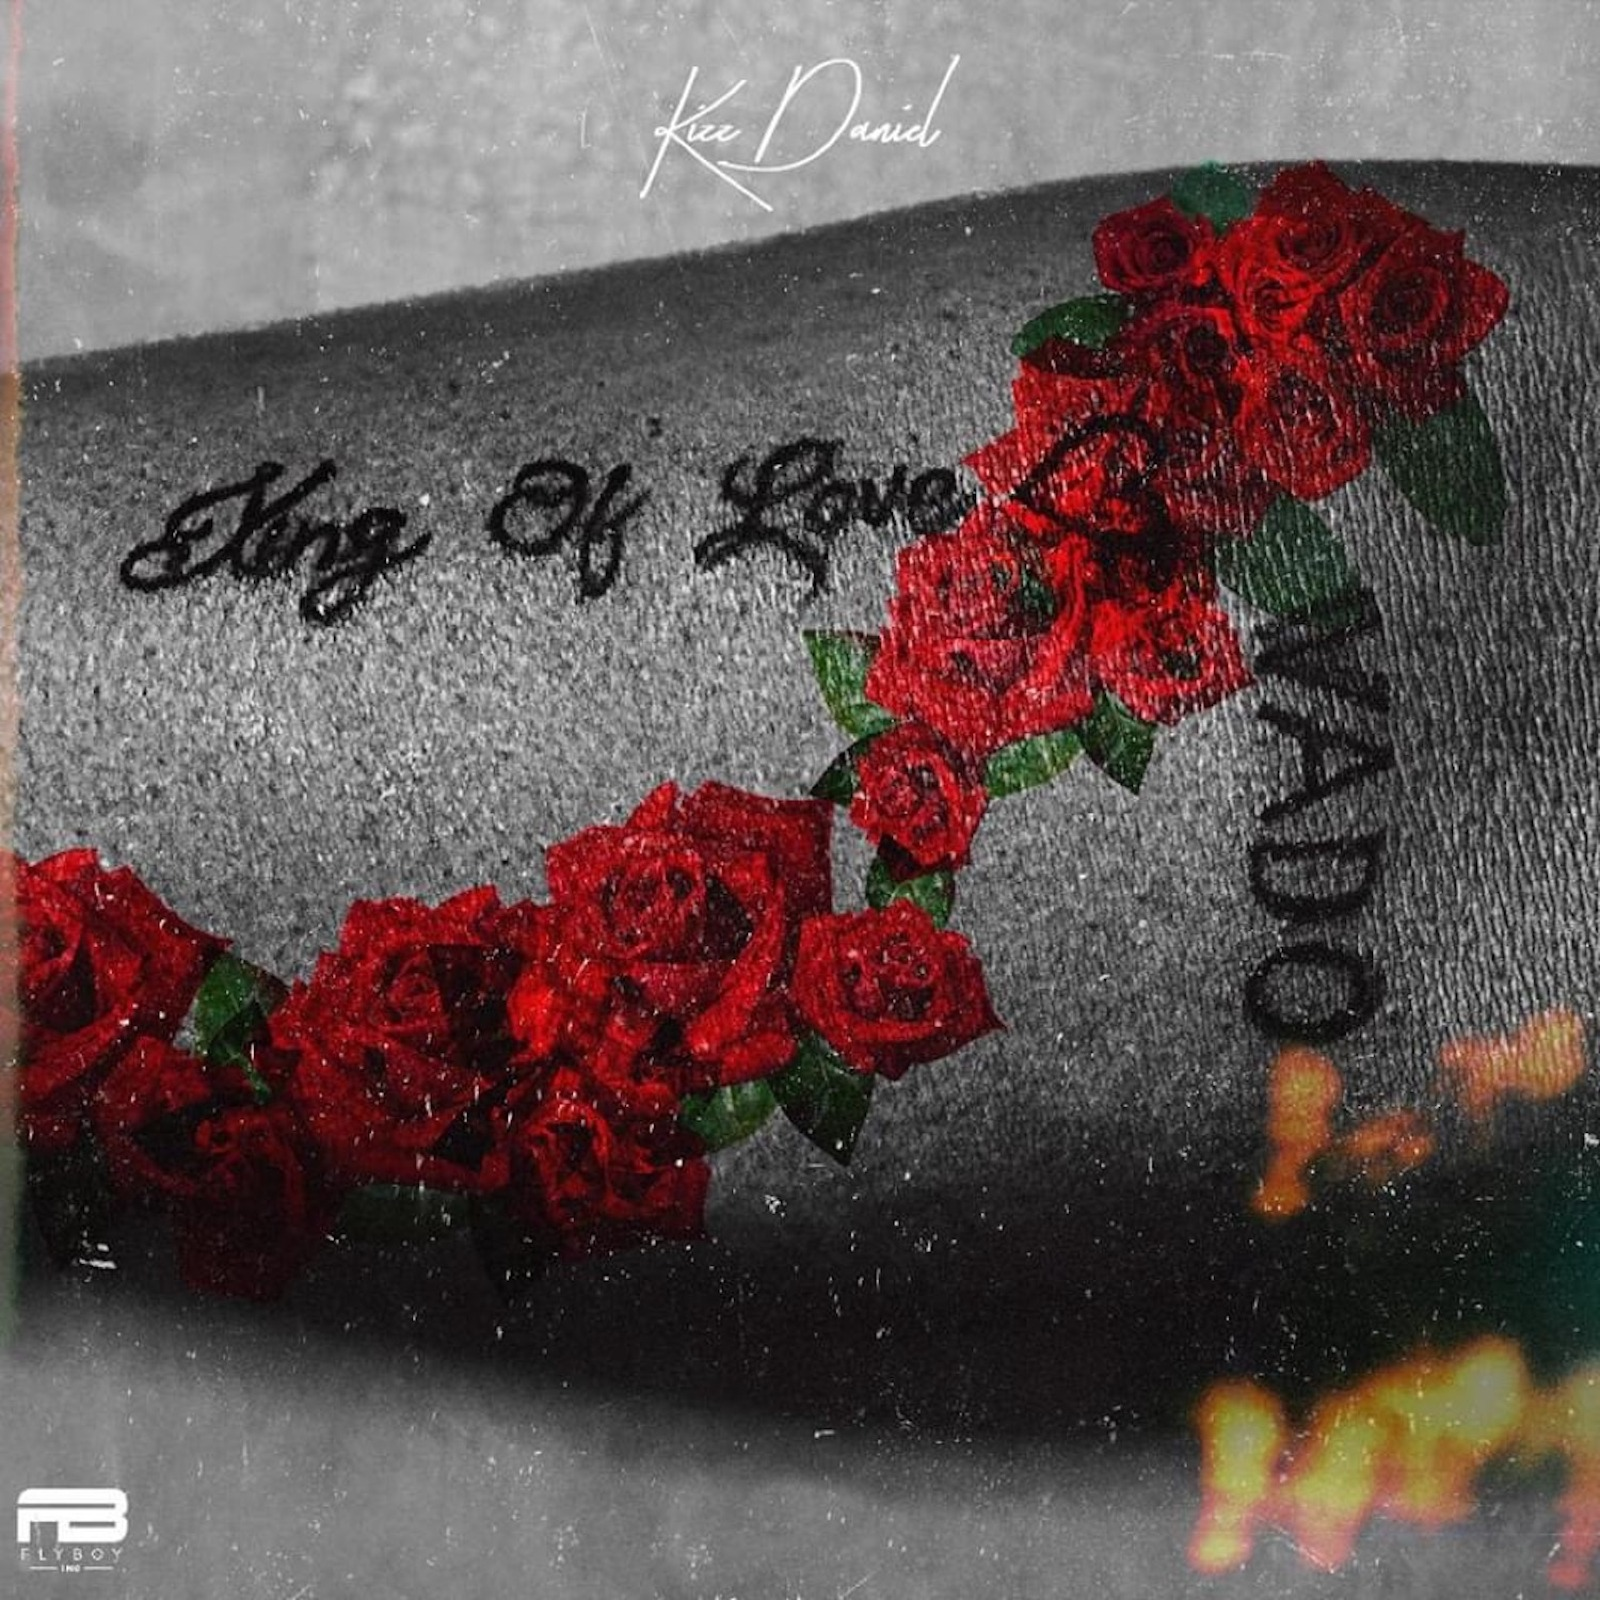 Kizz Daniel - King of Love (Album)